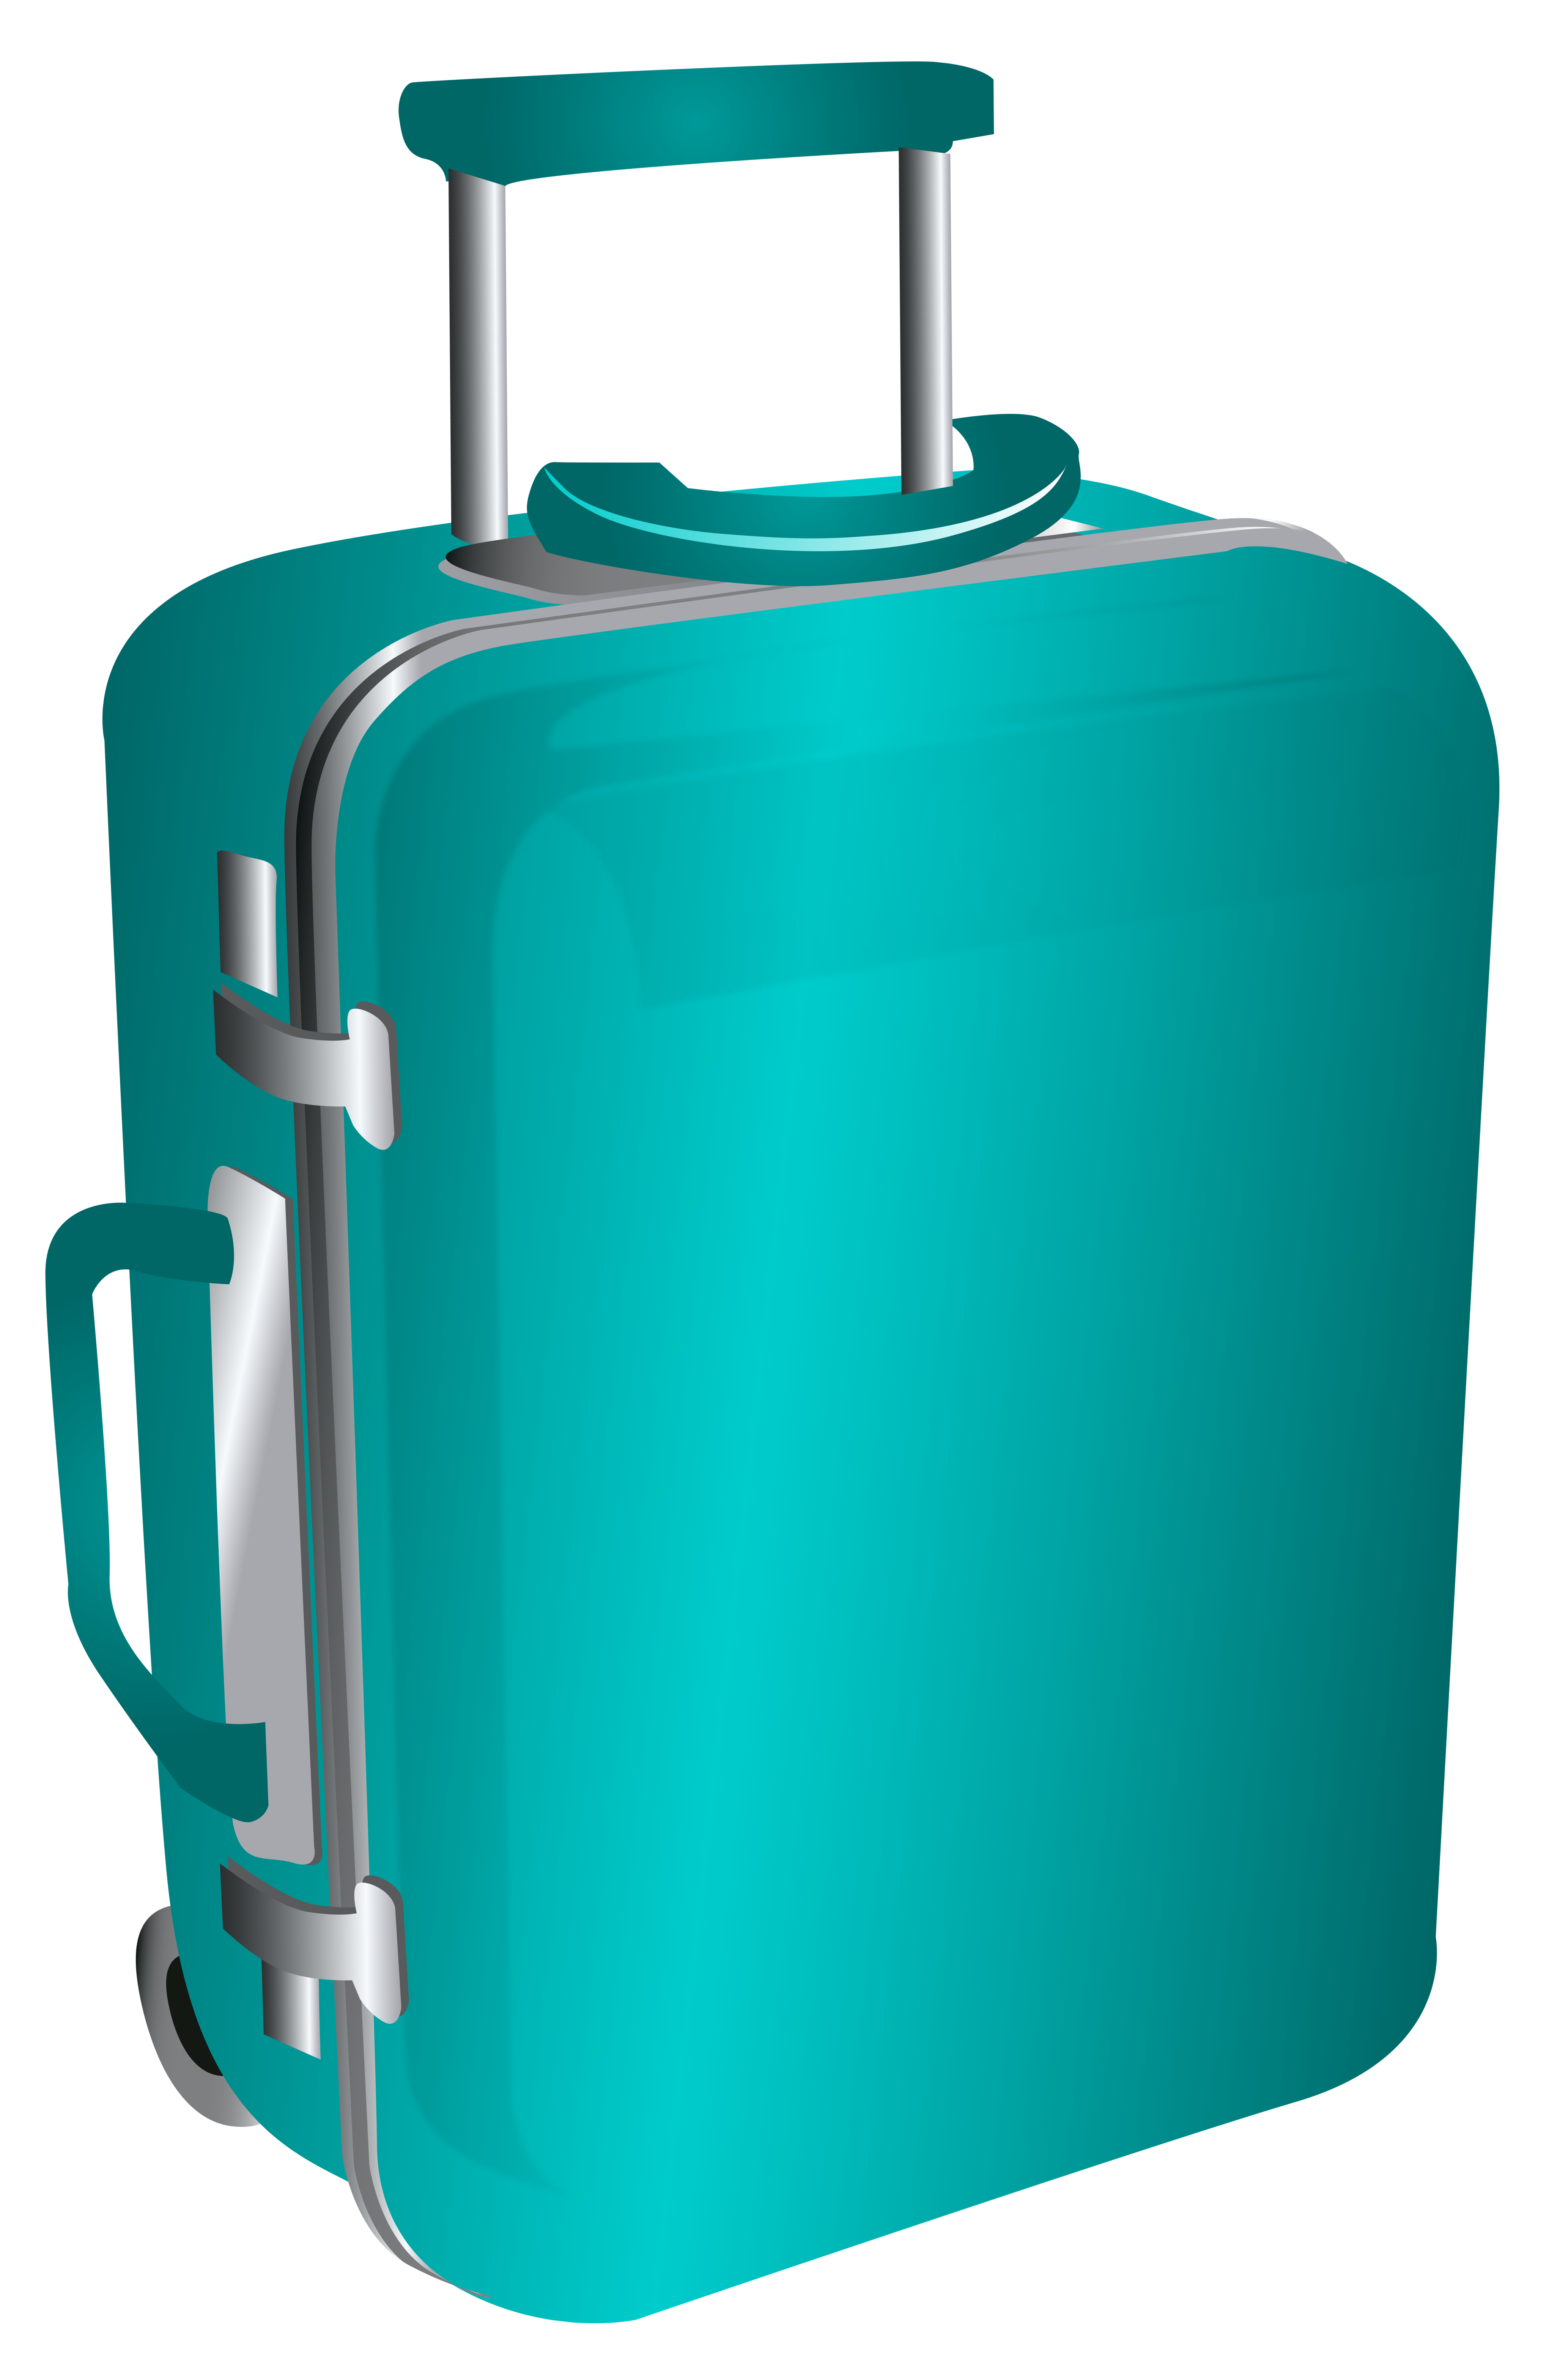 Blue trolley bag png. Travel clipart travel case clip art black and white library